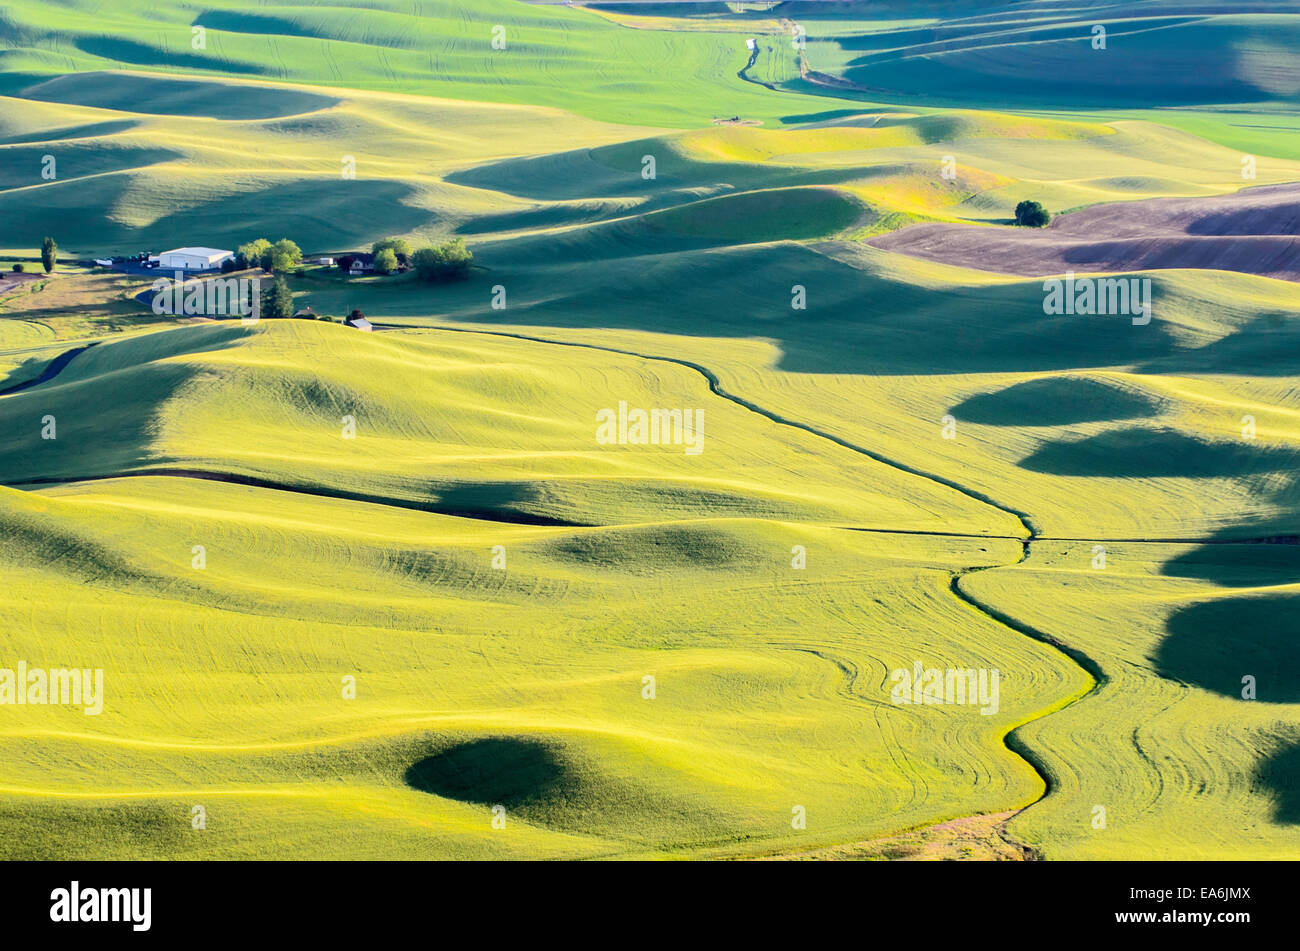 Rural landscape at sunset, Palouse, Washington, America, USA - Stock Image